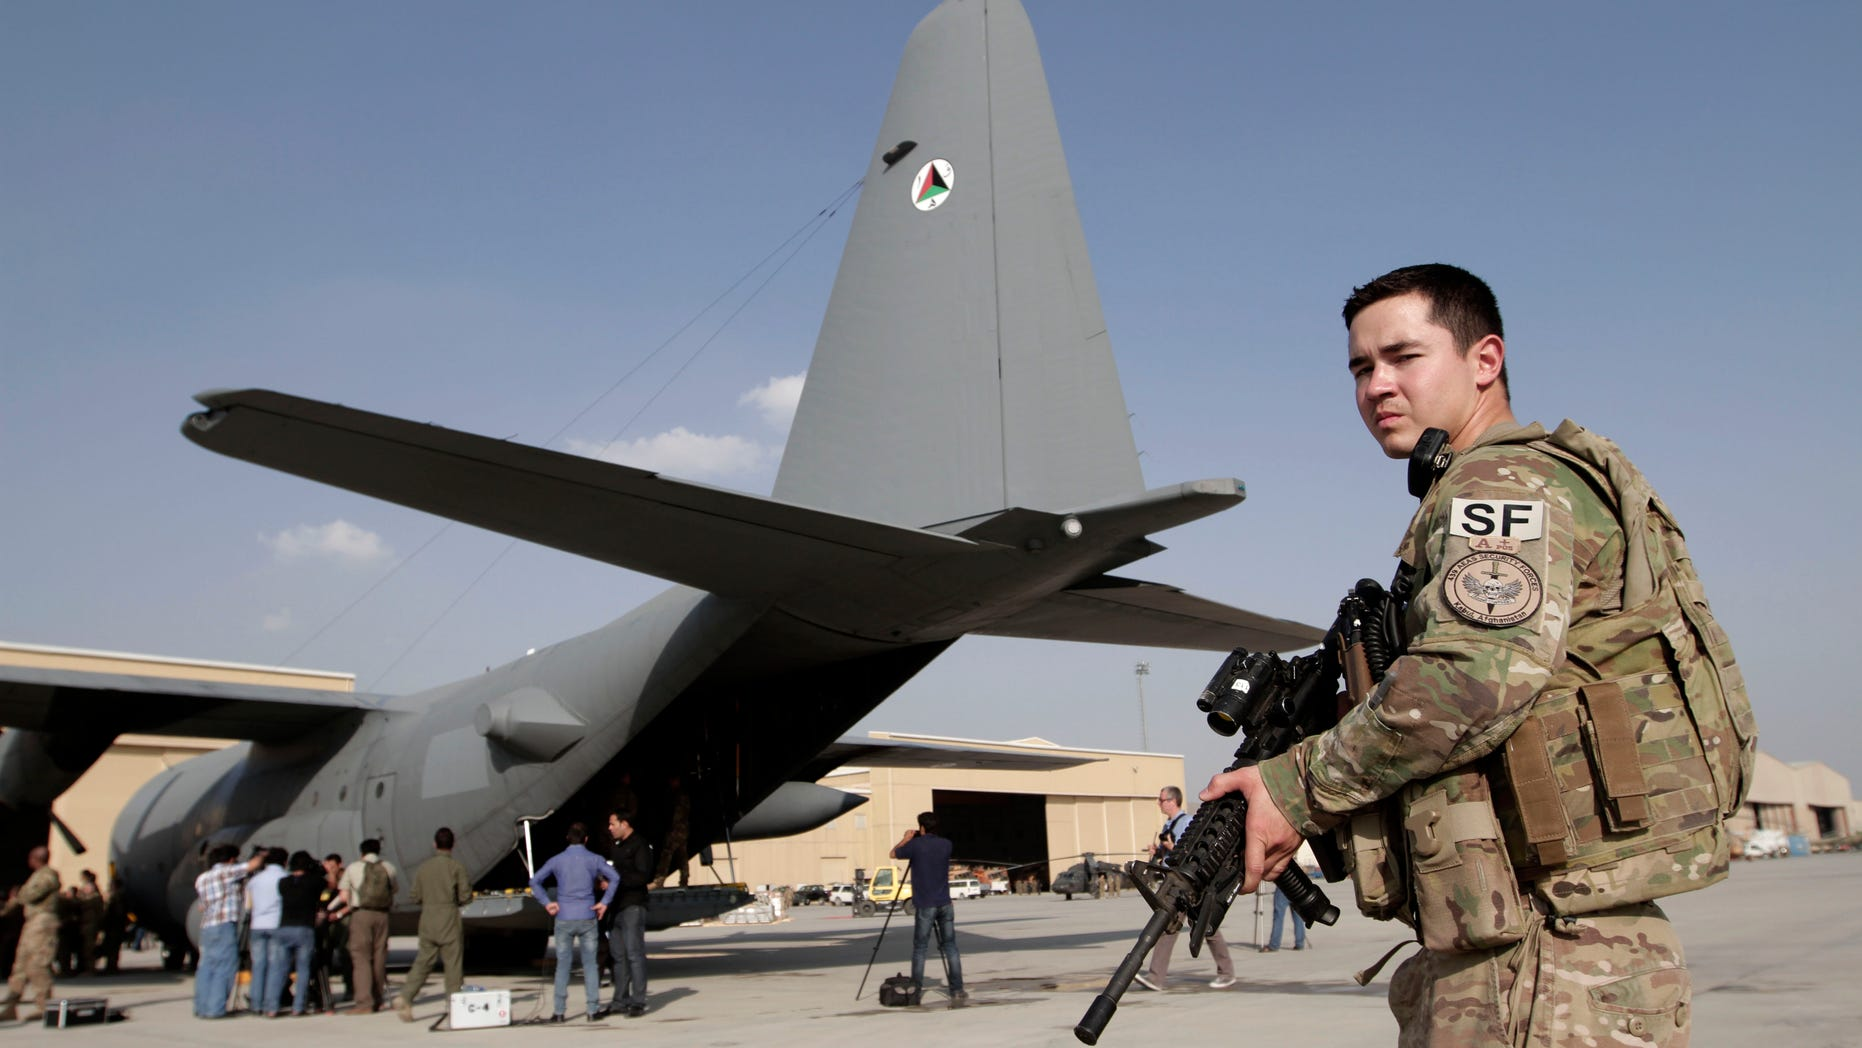 An International Security Assistance Force soldier stands guard near a C-130 transport aircraft at the Afghan Air Force Base in Kabul, Afghanistan, Wednesday, Oct. 9, 2013. Afghanistan took delivery on Wednesday of two C-130 transport aircraft from the United States, part of an effort to give the country's military the ability to better fight insurgents around the country. (AP Photo/Rahmat Gul)